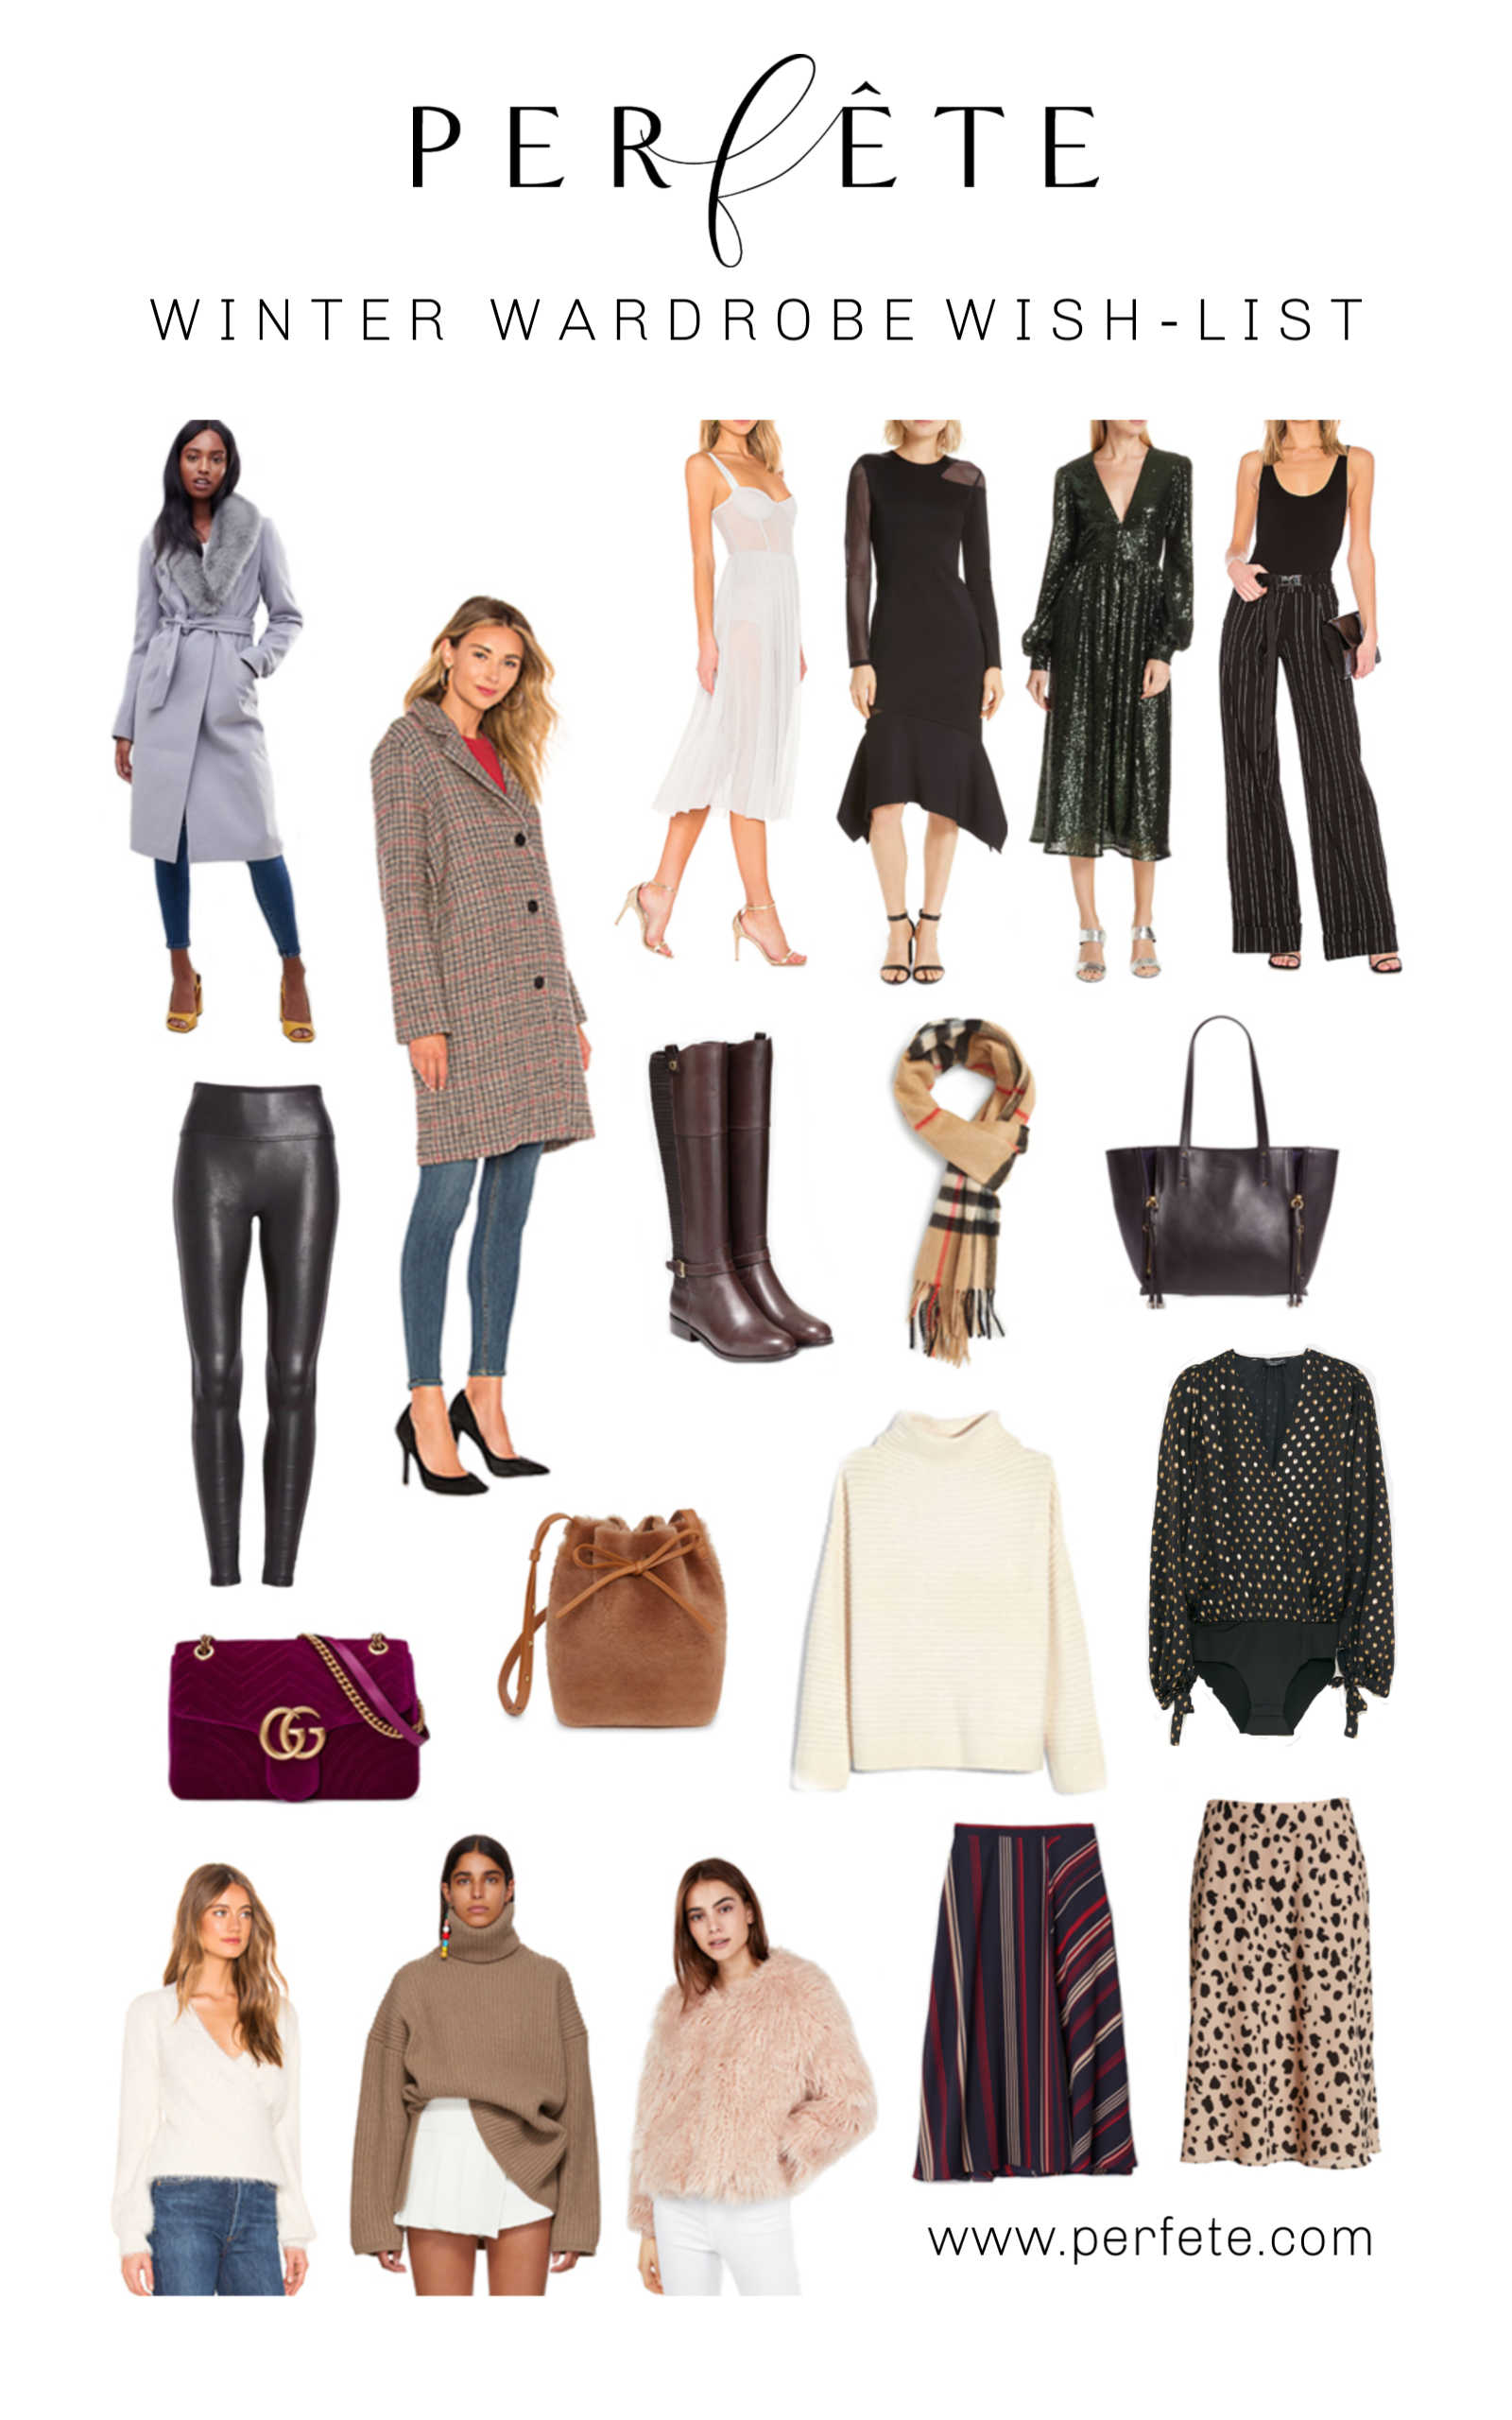 ce27822e7fe Our Winter Wardrobe Wish List - Perfete